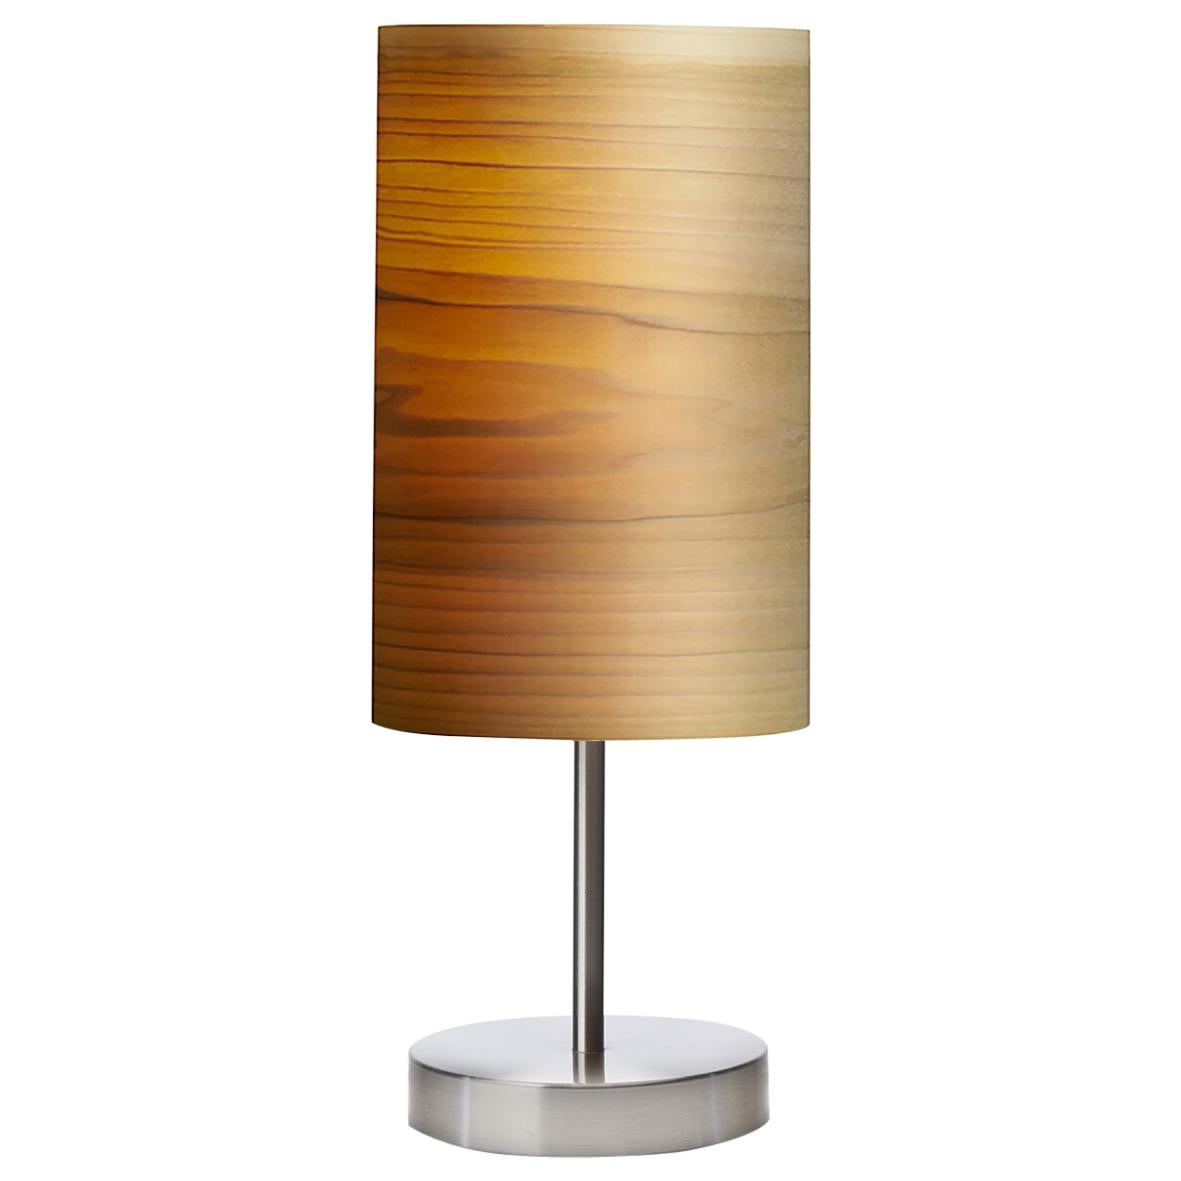 SERRET Brushed Stain Nickel Table Lamp With Poplar Wood Shade For Sale